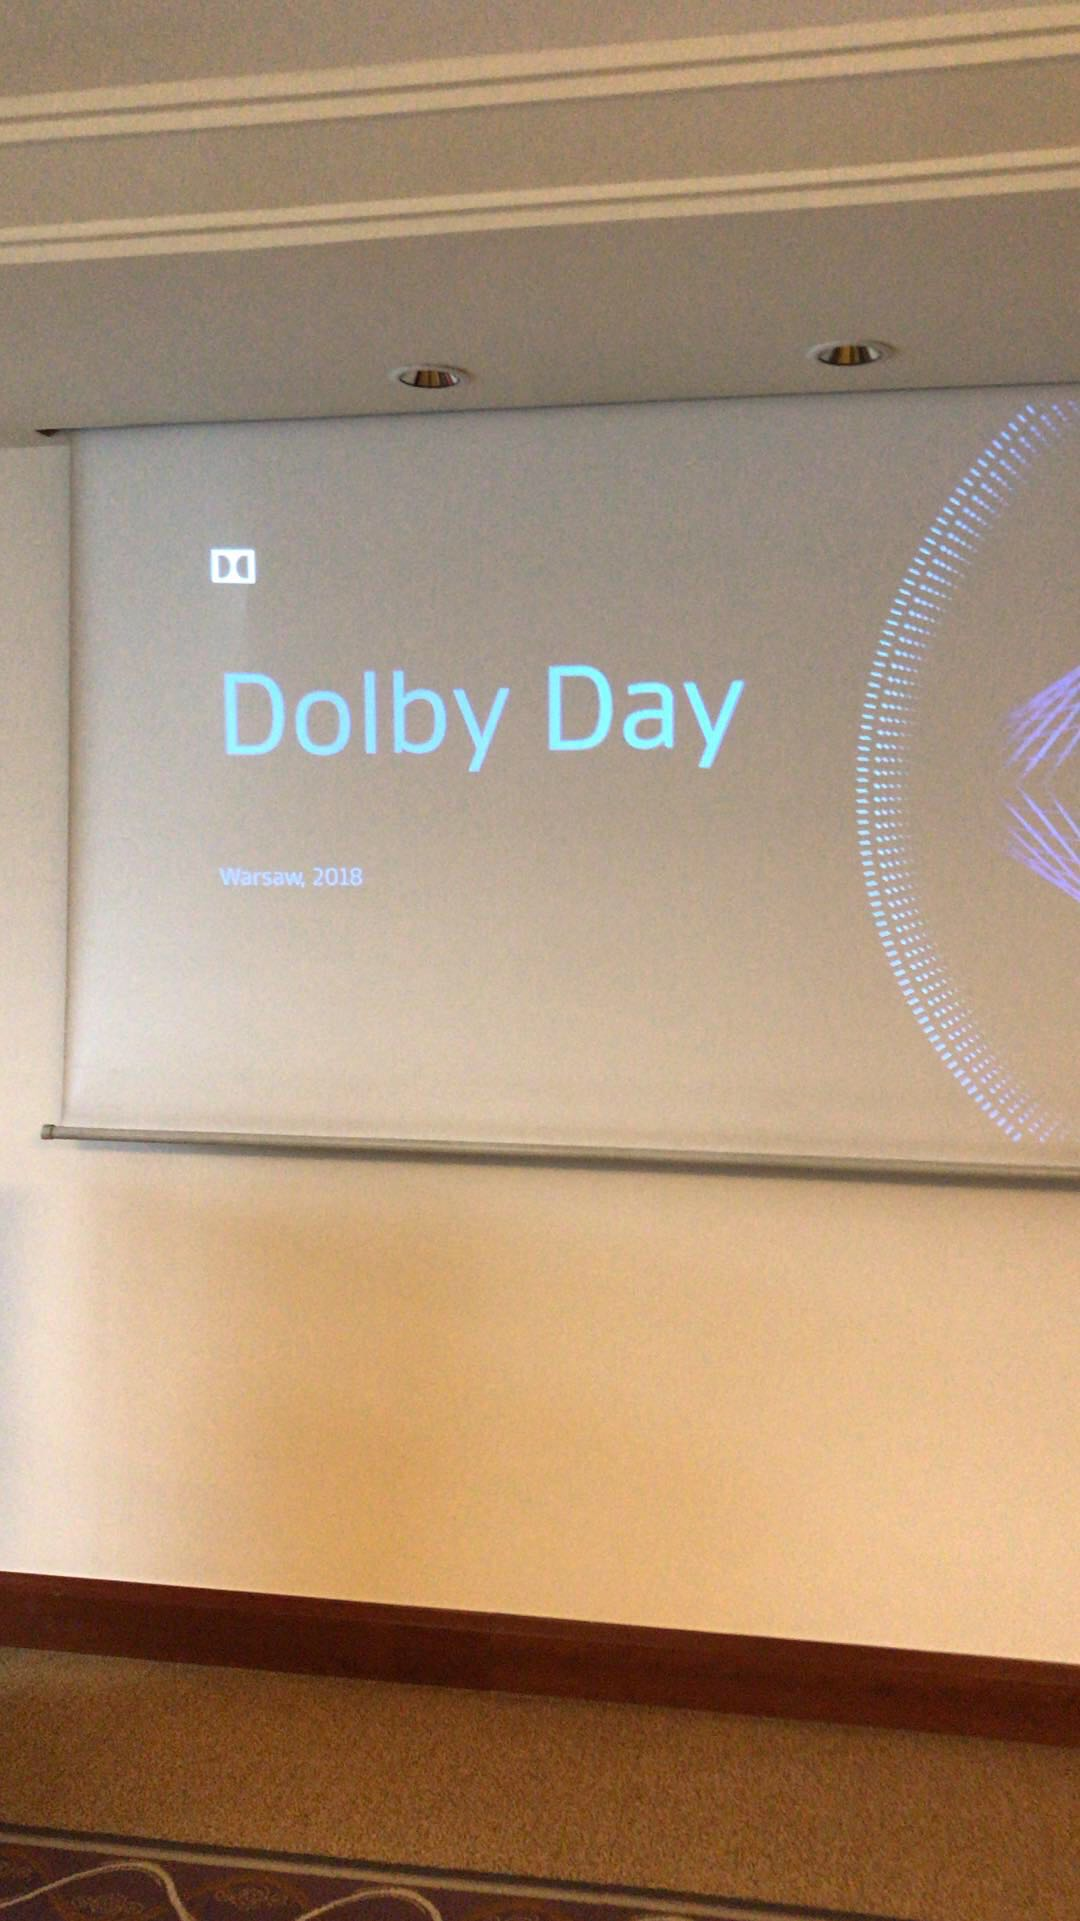 Dolby Day